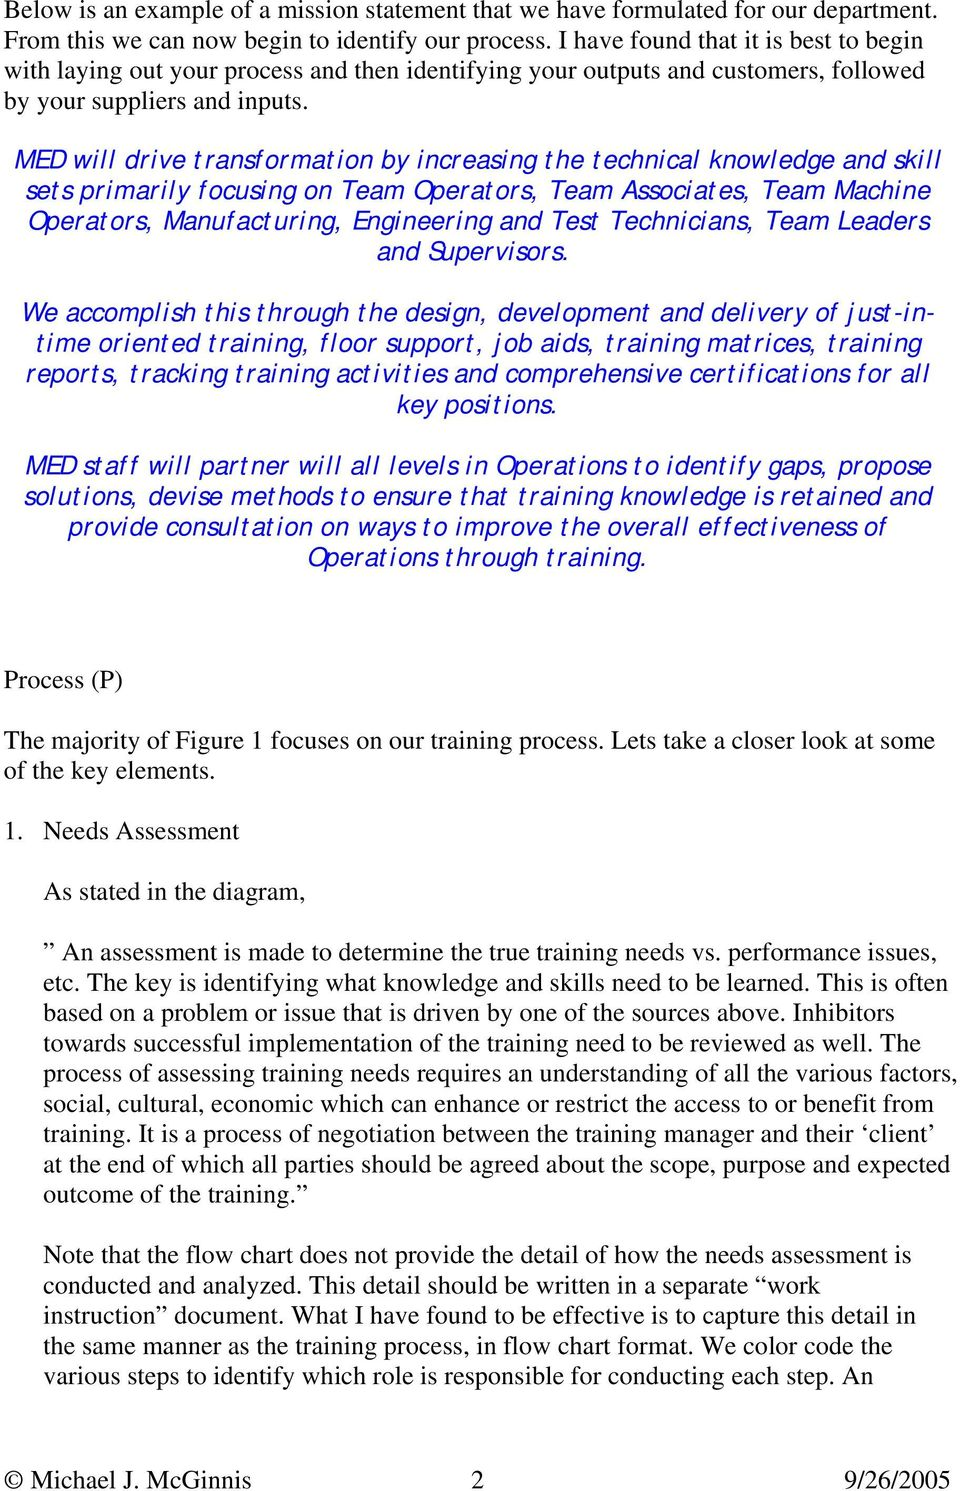 hight resolution of med will drive transformation by increasing the technical knowledge and skill sets primarily focusing on team